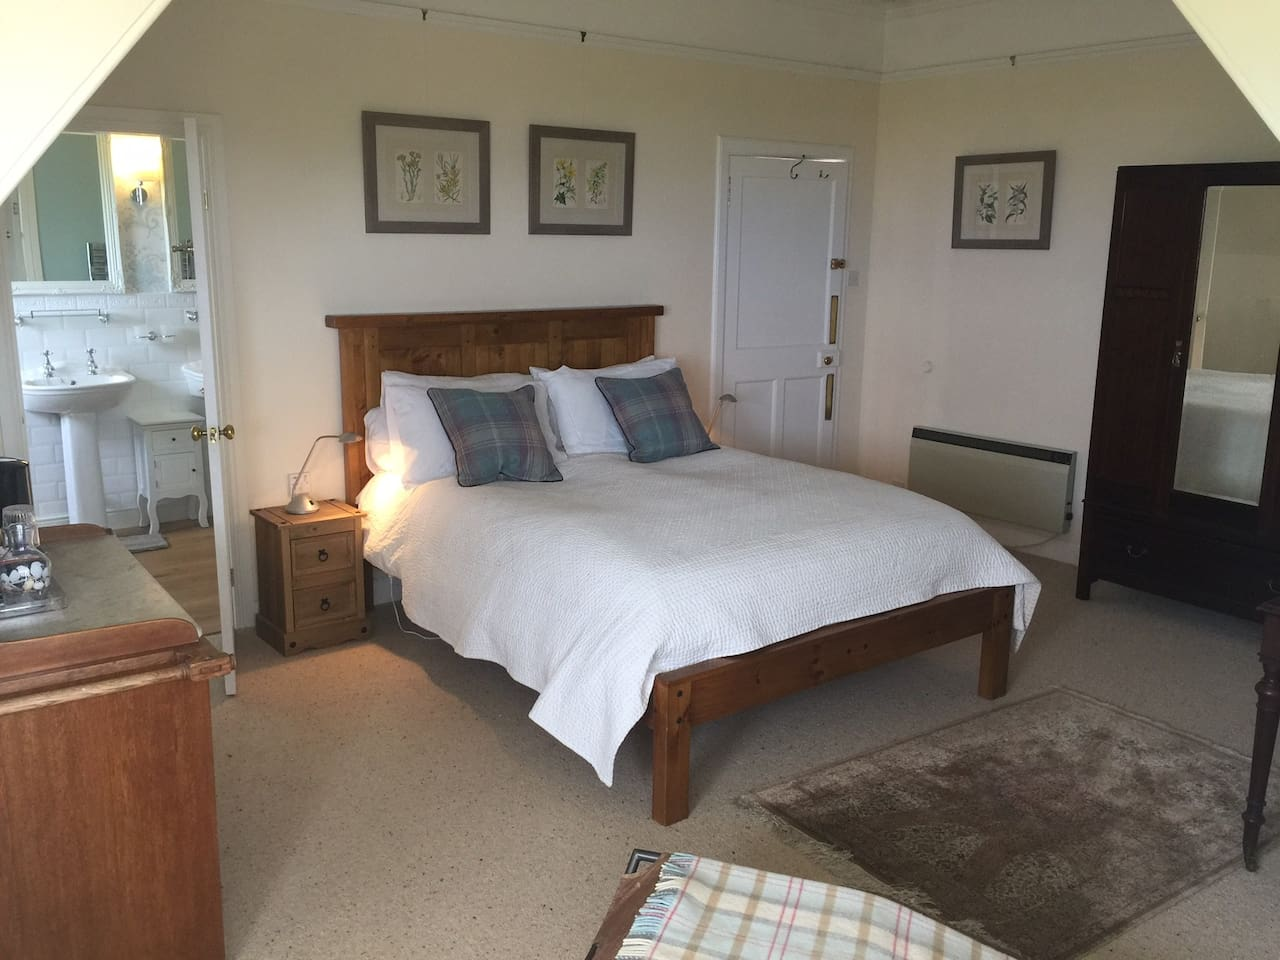 Dunlossit B At Machrihanish Double Room 1 Gigha Houses For In Scotland United Kingdom